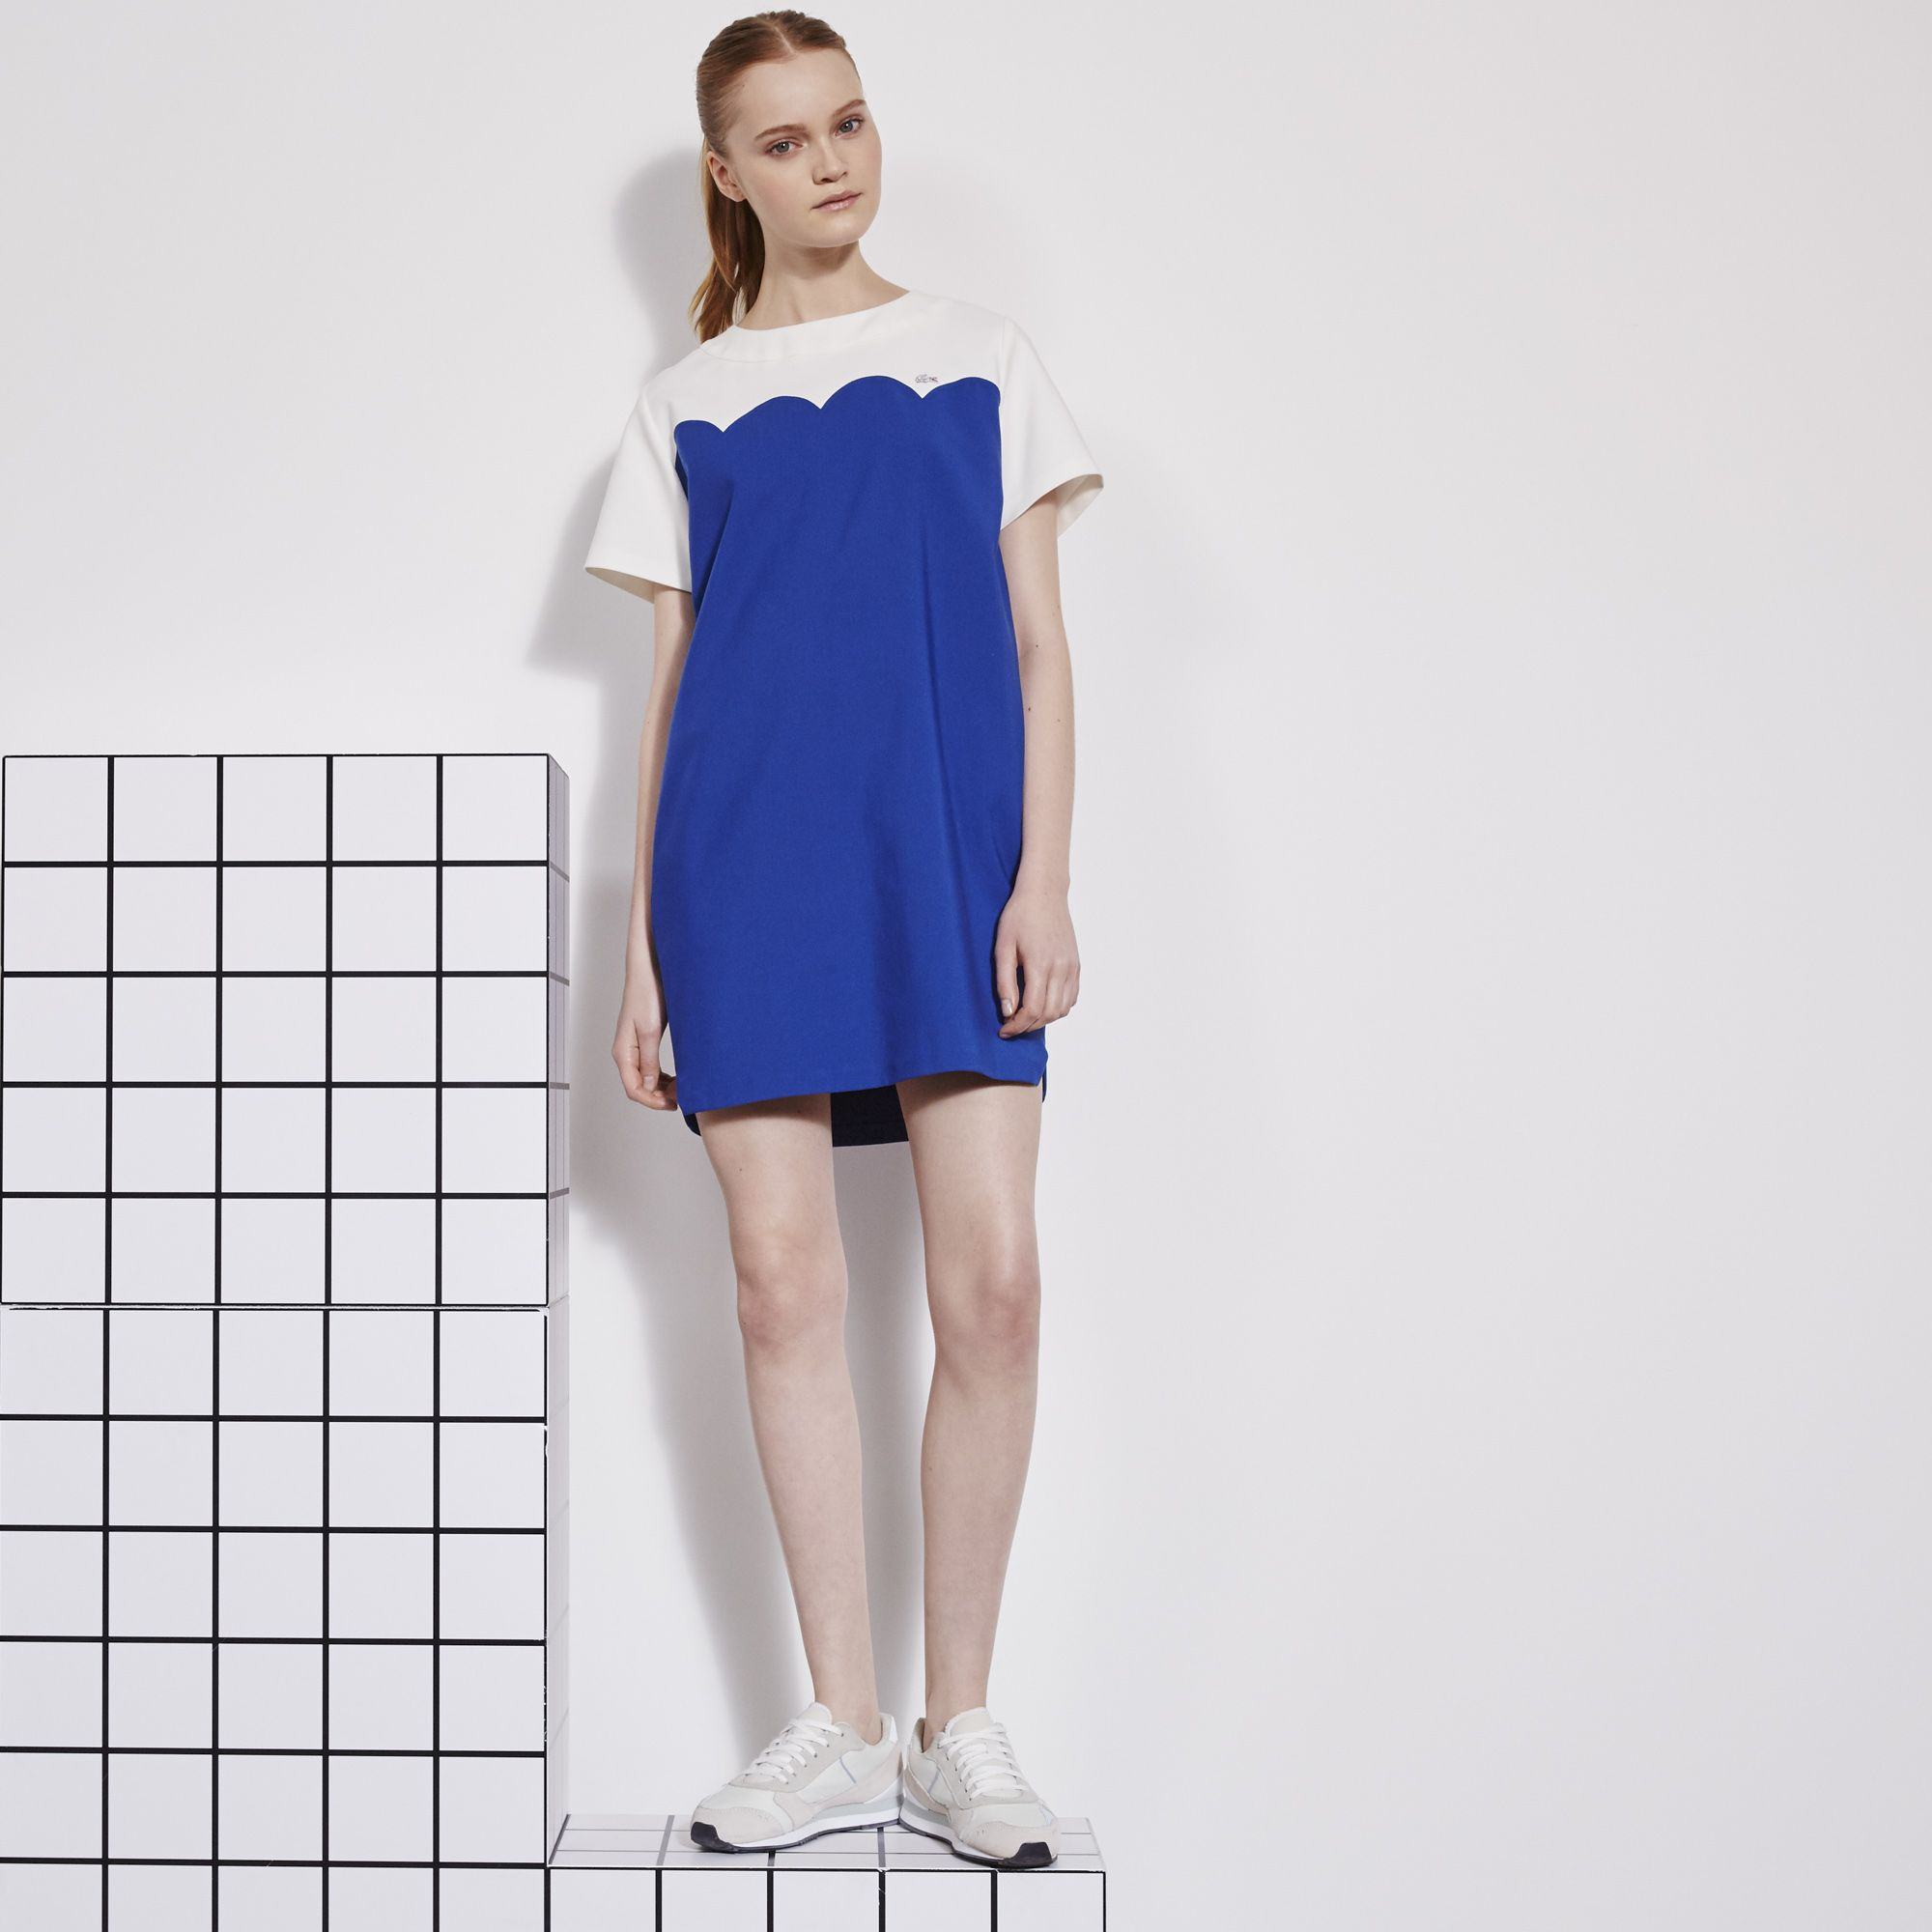 http://global.lacoste.com/en/lacoste/women/clothing/dresses-skirts/two-tone-dress-with-wave-cutout/EF8021-00.html?dwvar_EF8021-00_color=YQ5